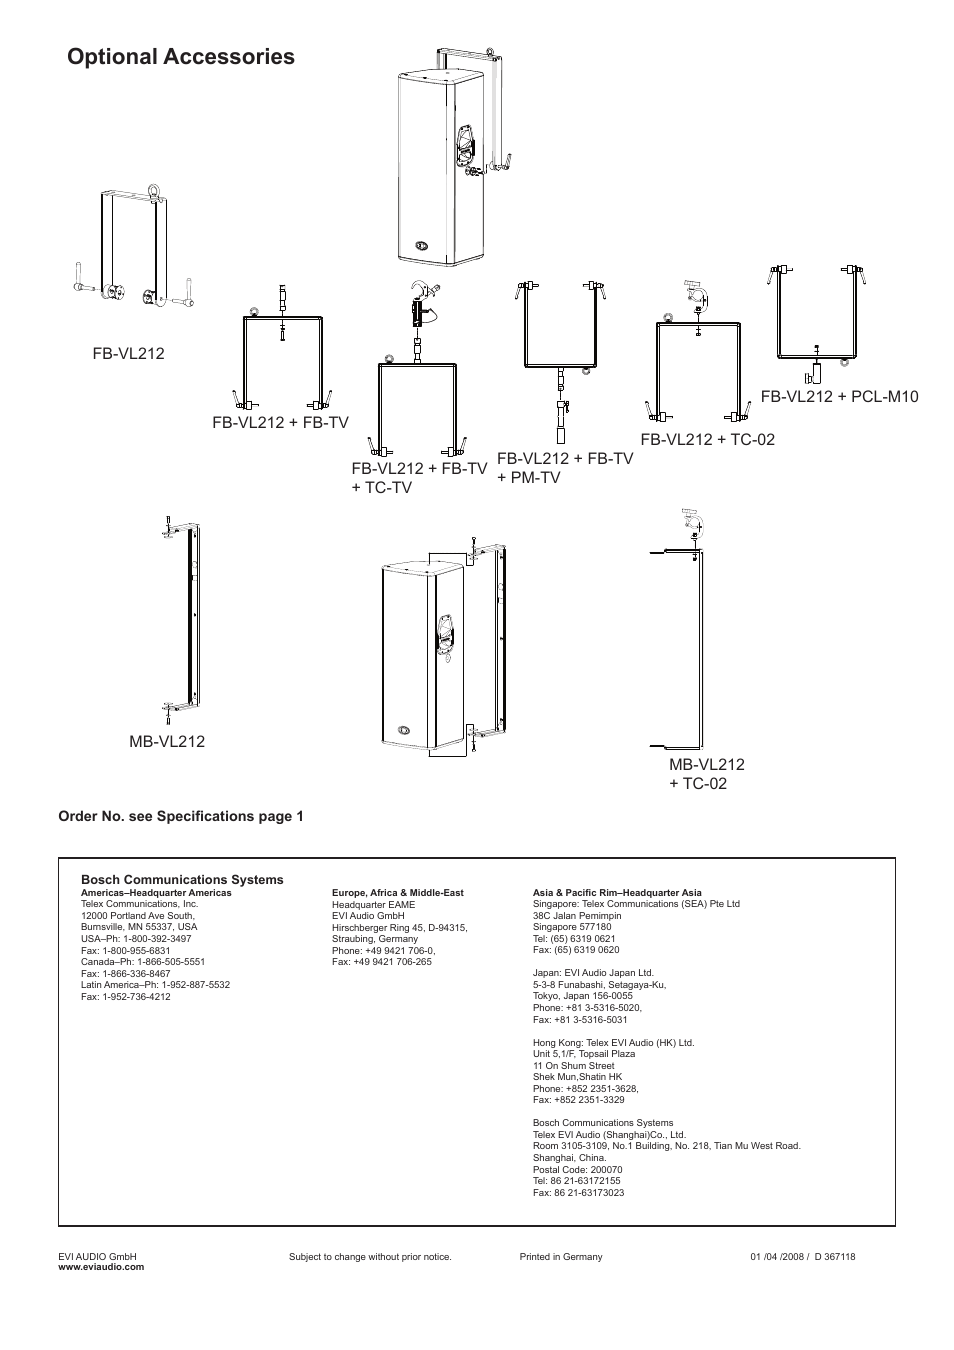 Optional accessories, Order no. see specifications page 1